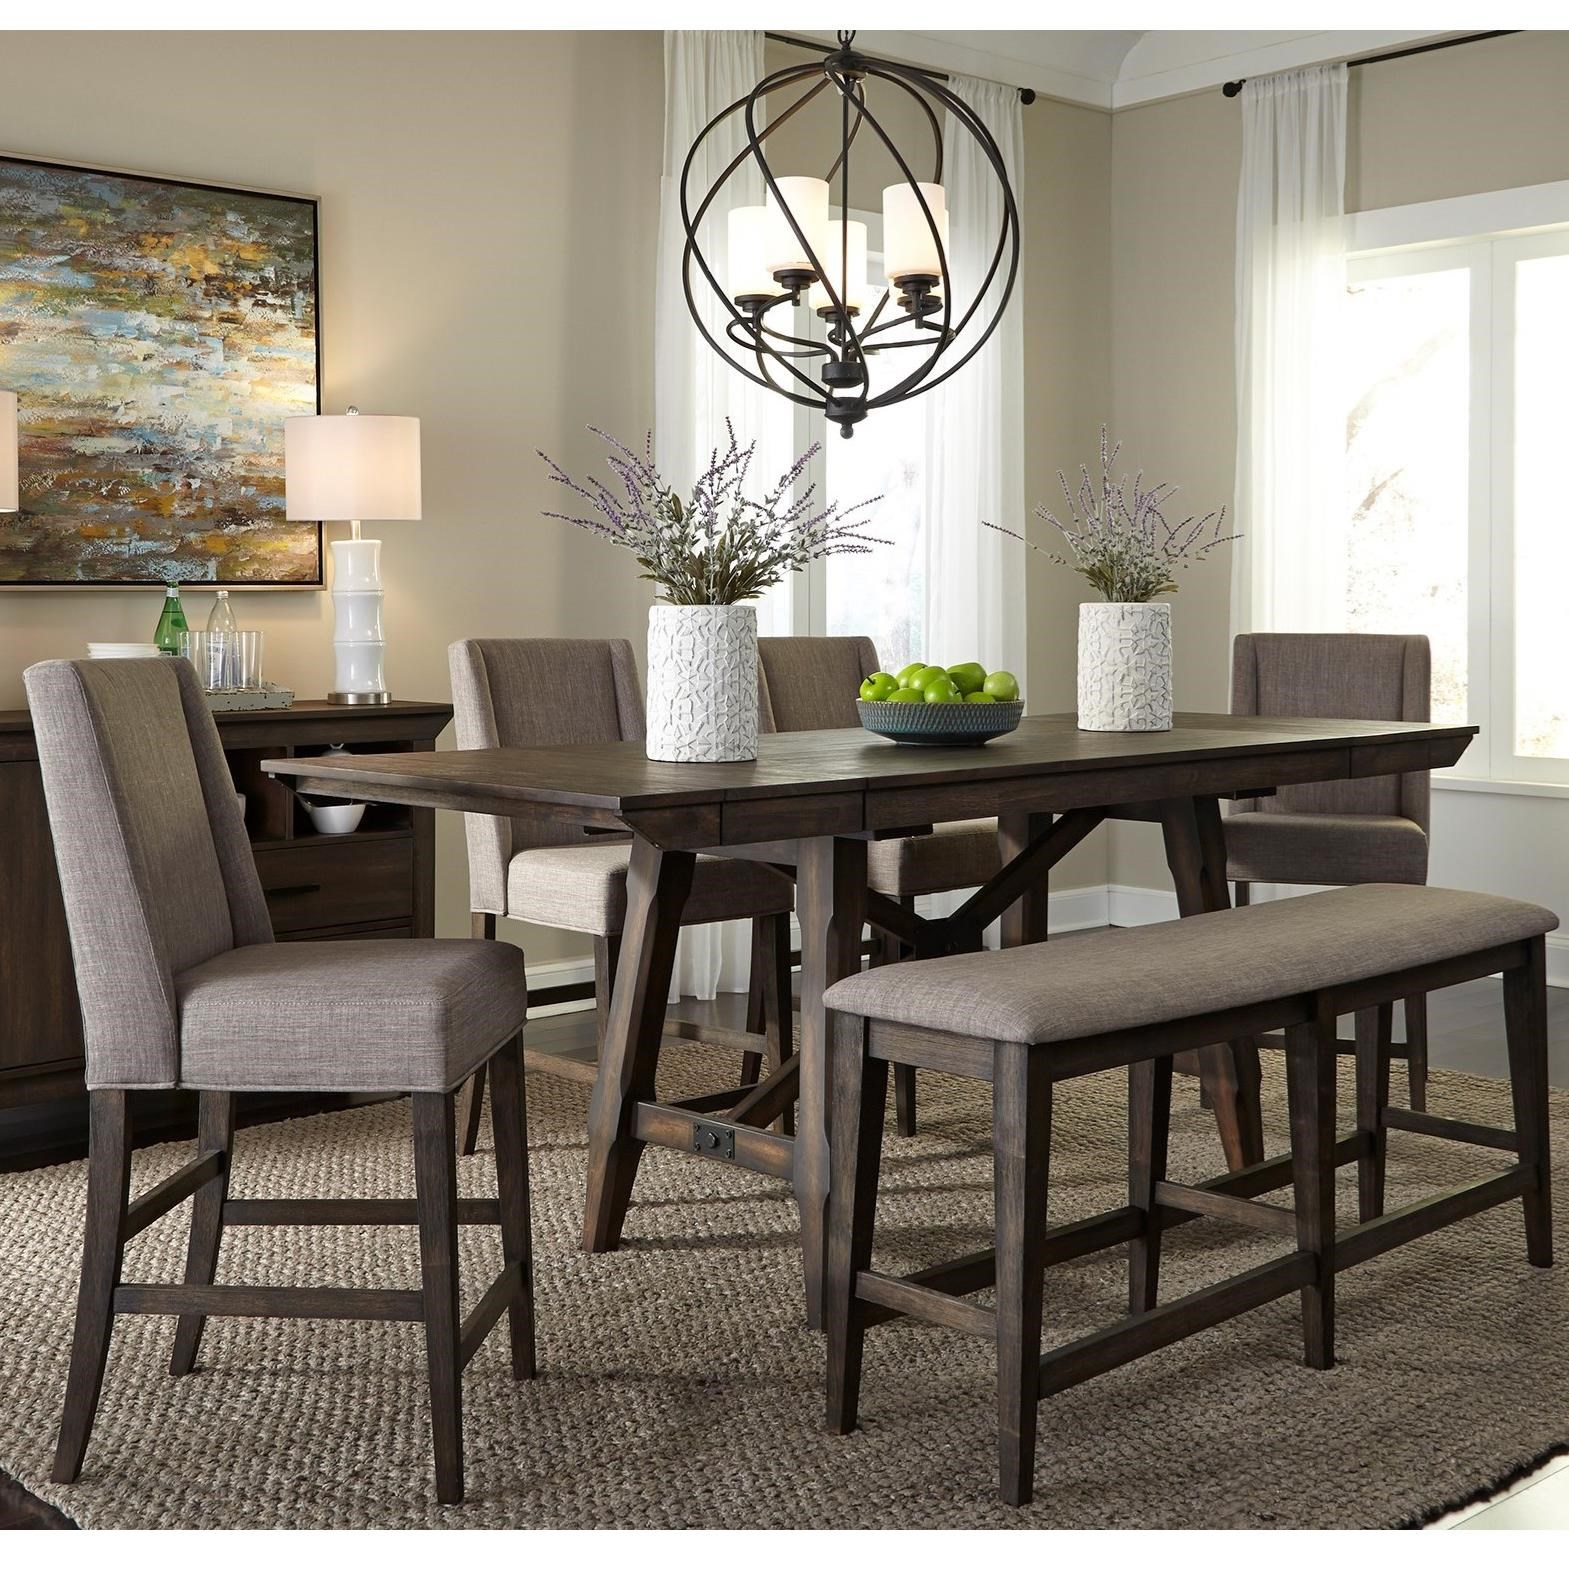 Double Bridge 6 Piece Gathering Table Set by Libby at Walker's Furniture